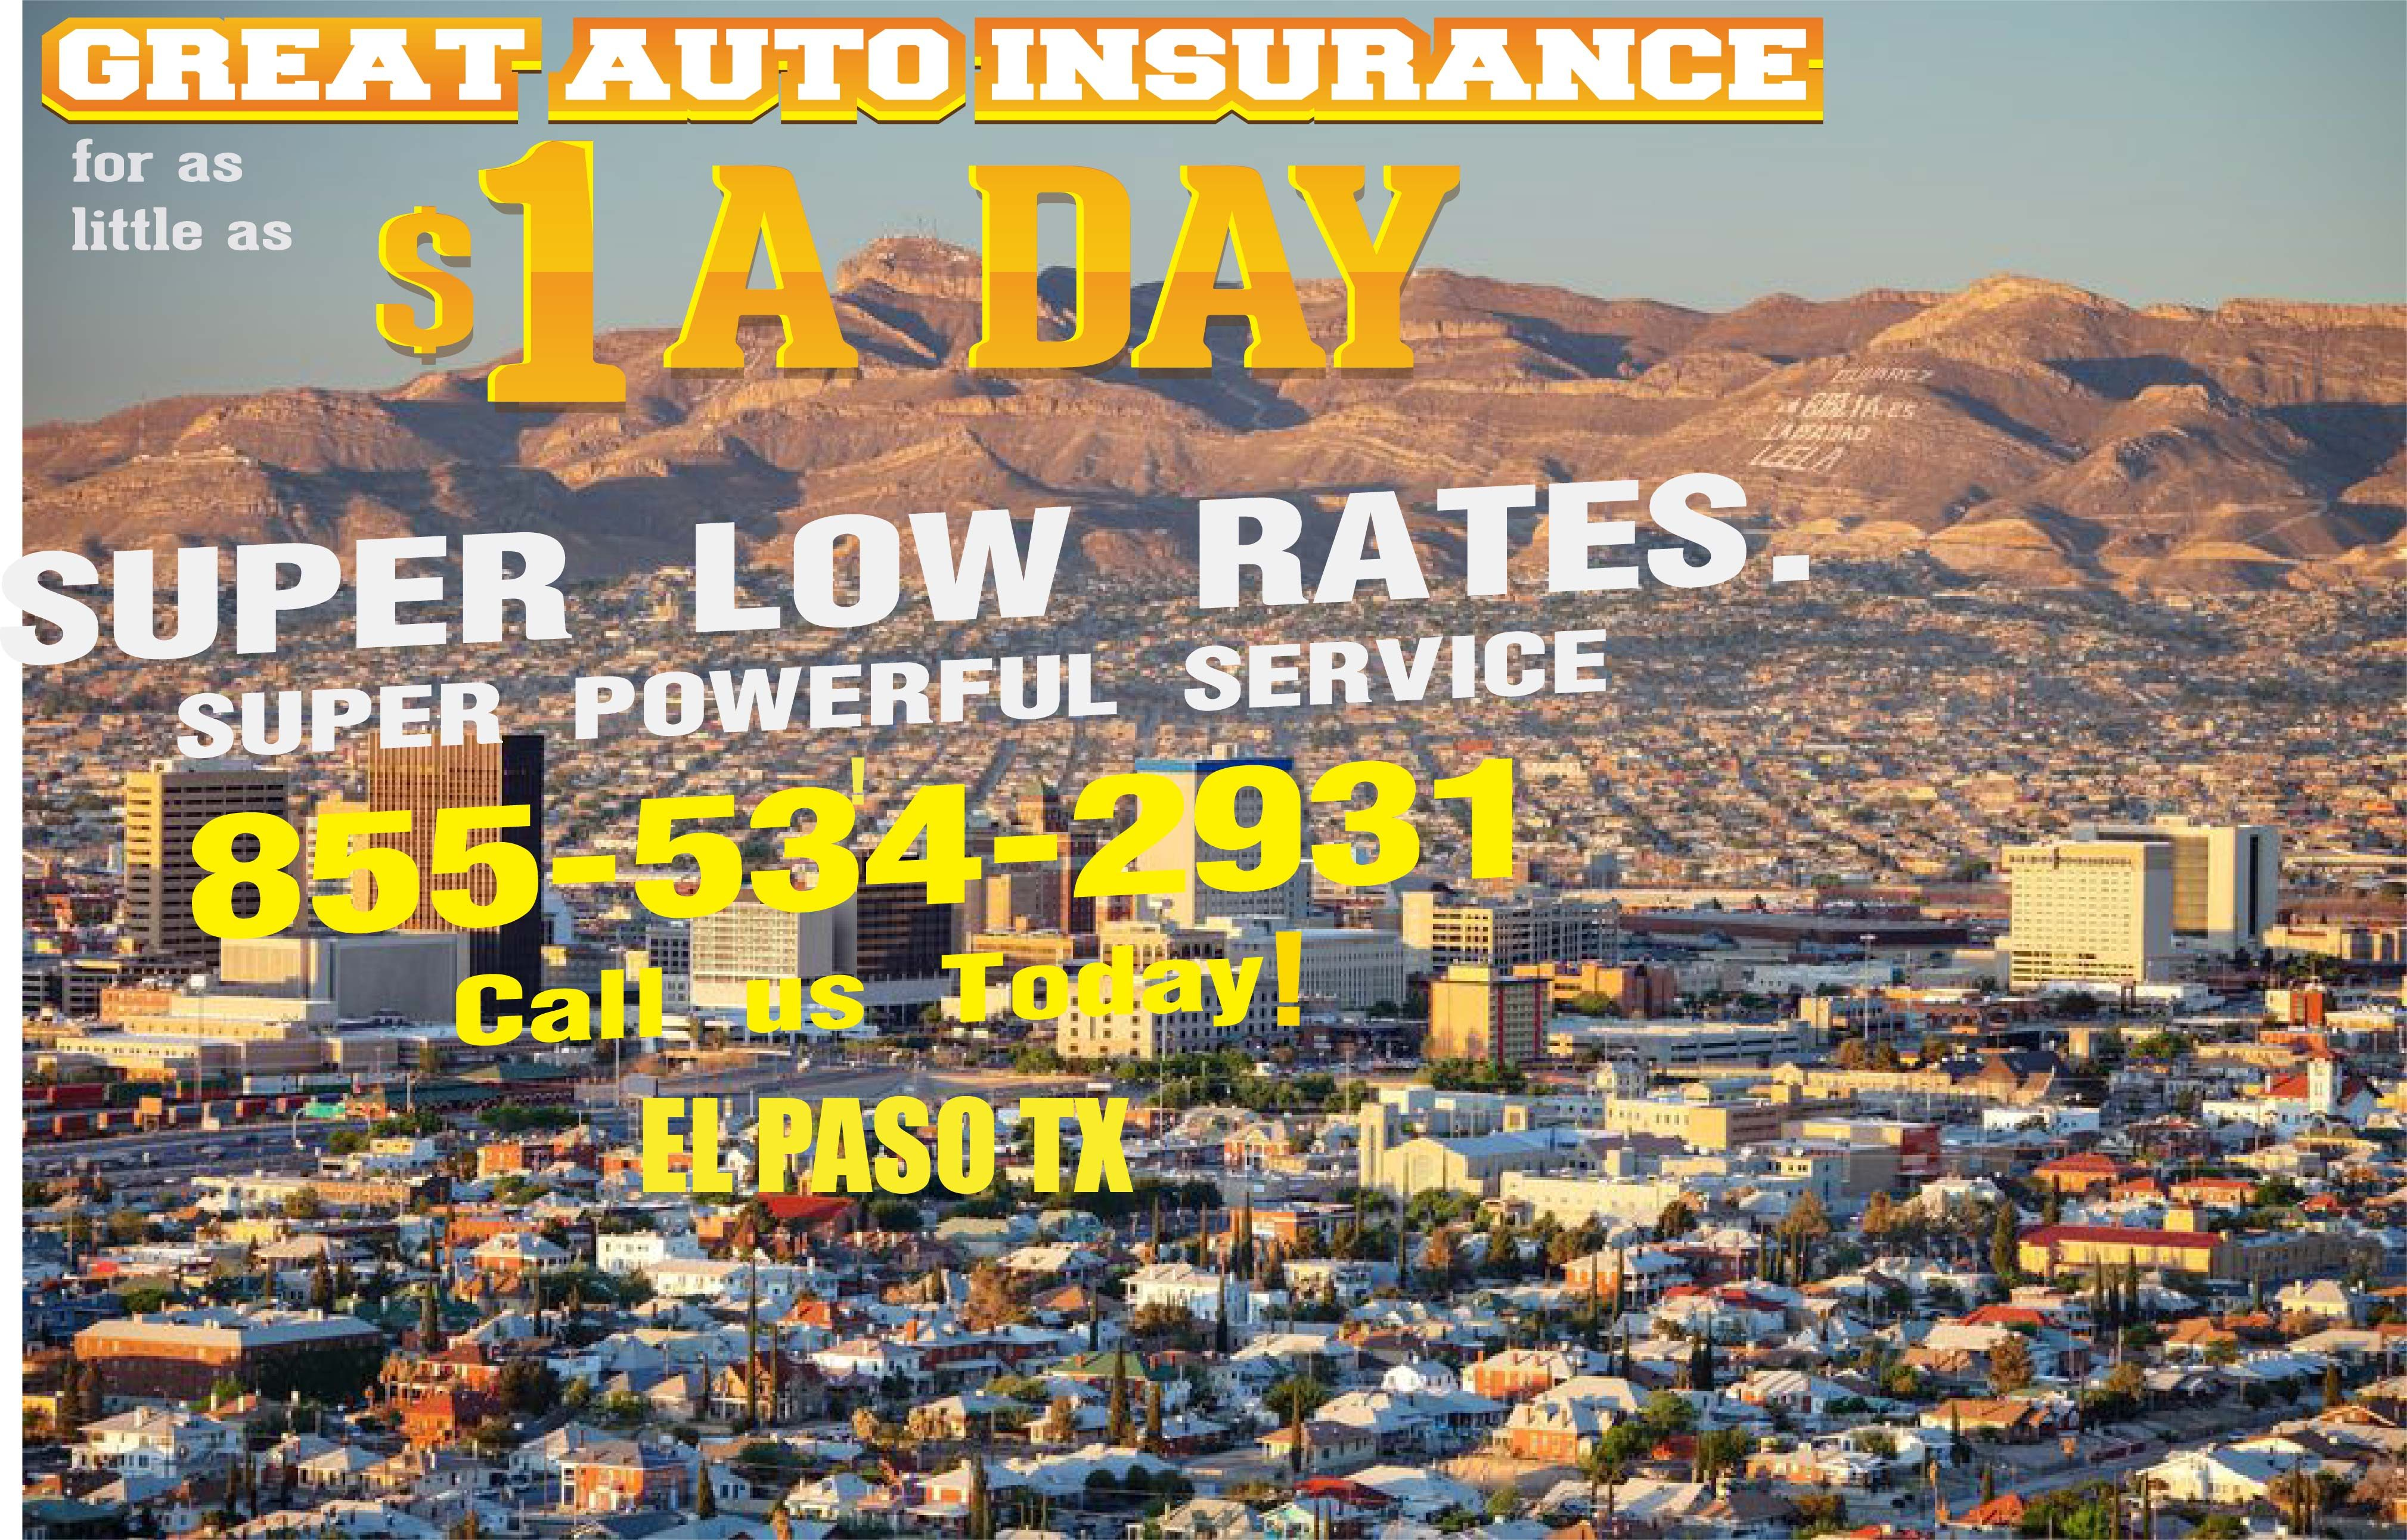 We Offer Affordable Auto Insurance In El Paso Texas Pay Less Then